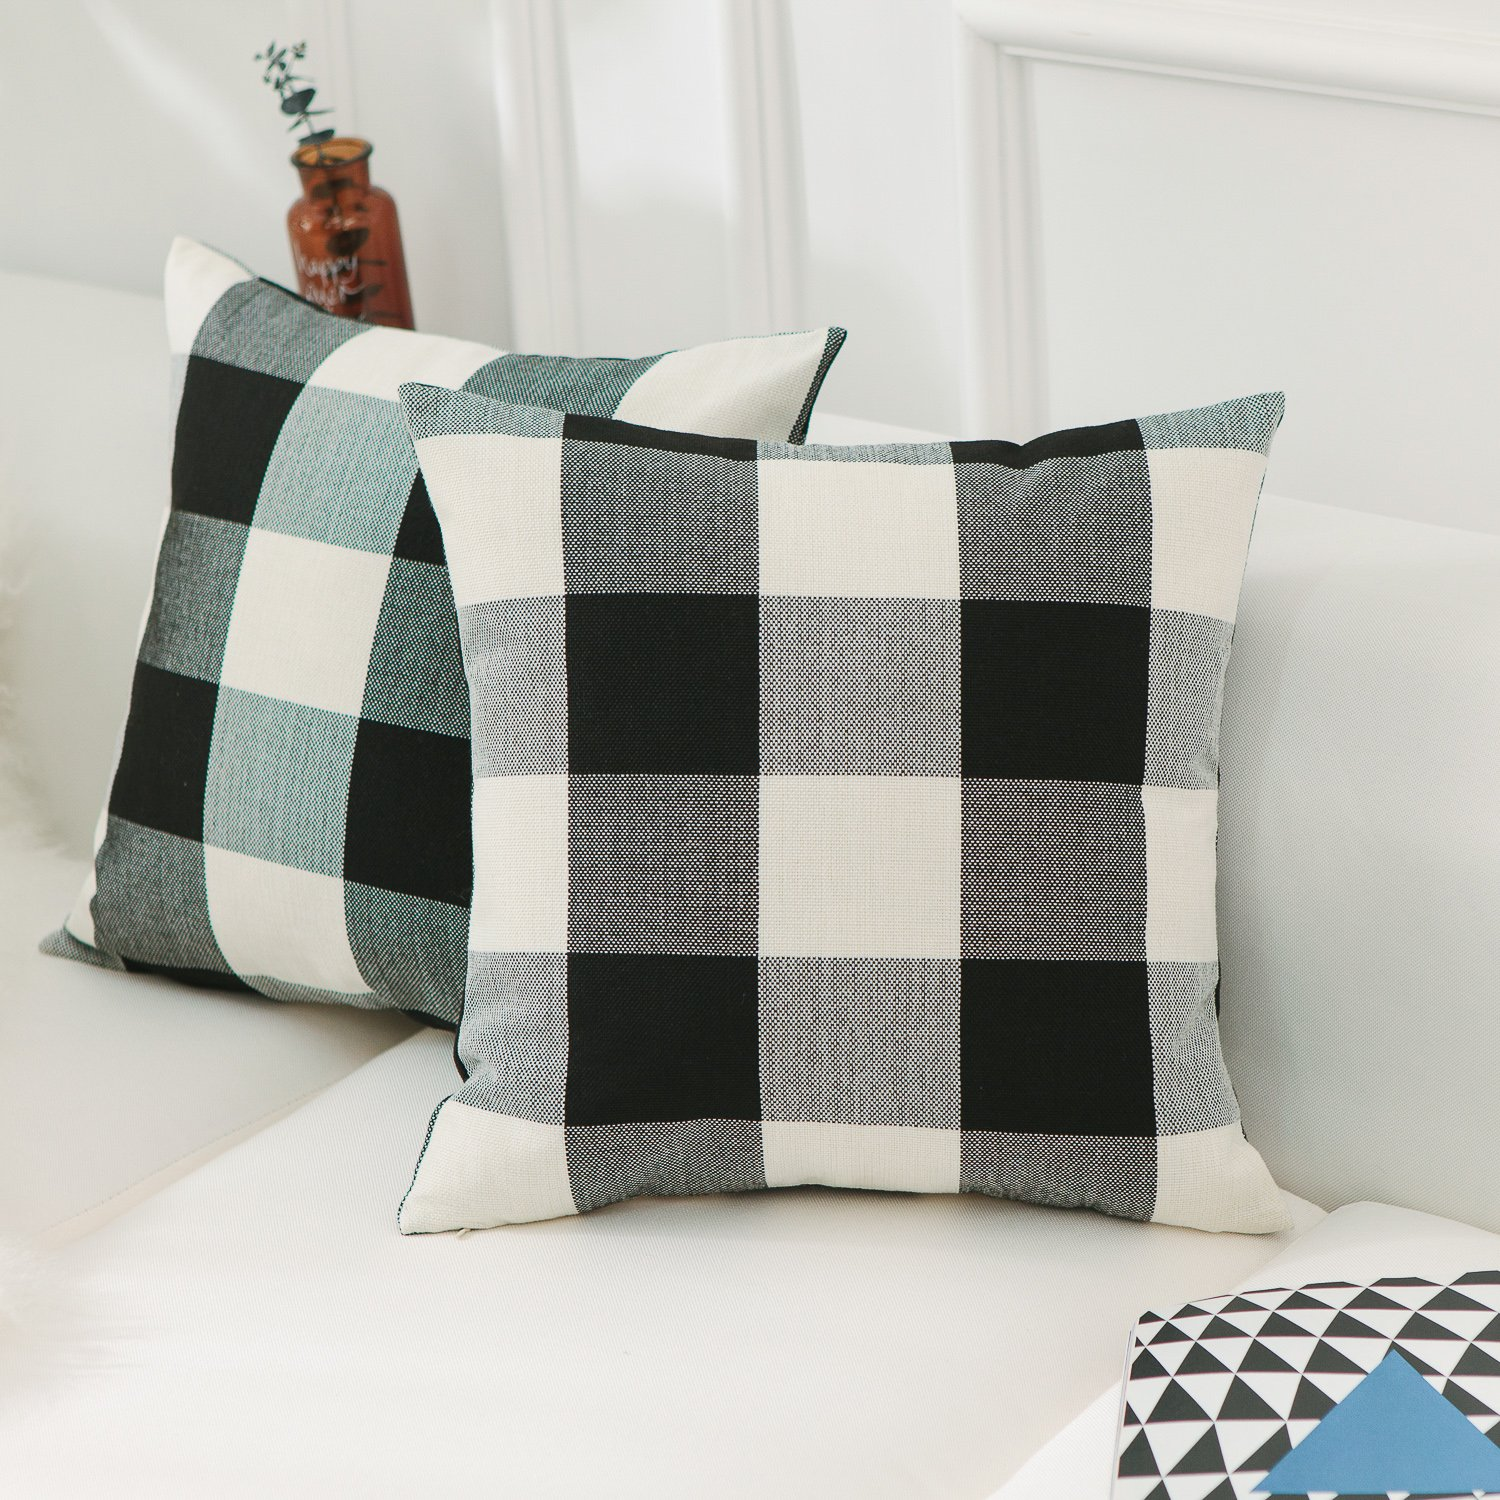 Home Brilliant Christmas Pillow Covers 18x18 Retro Farmhouse Tartan Checkered Plaids Cotton Linen Decorative Throw Pillow Case, Set of 2, Black White